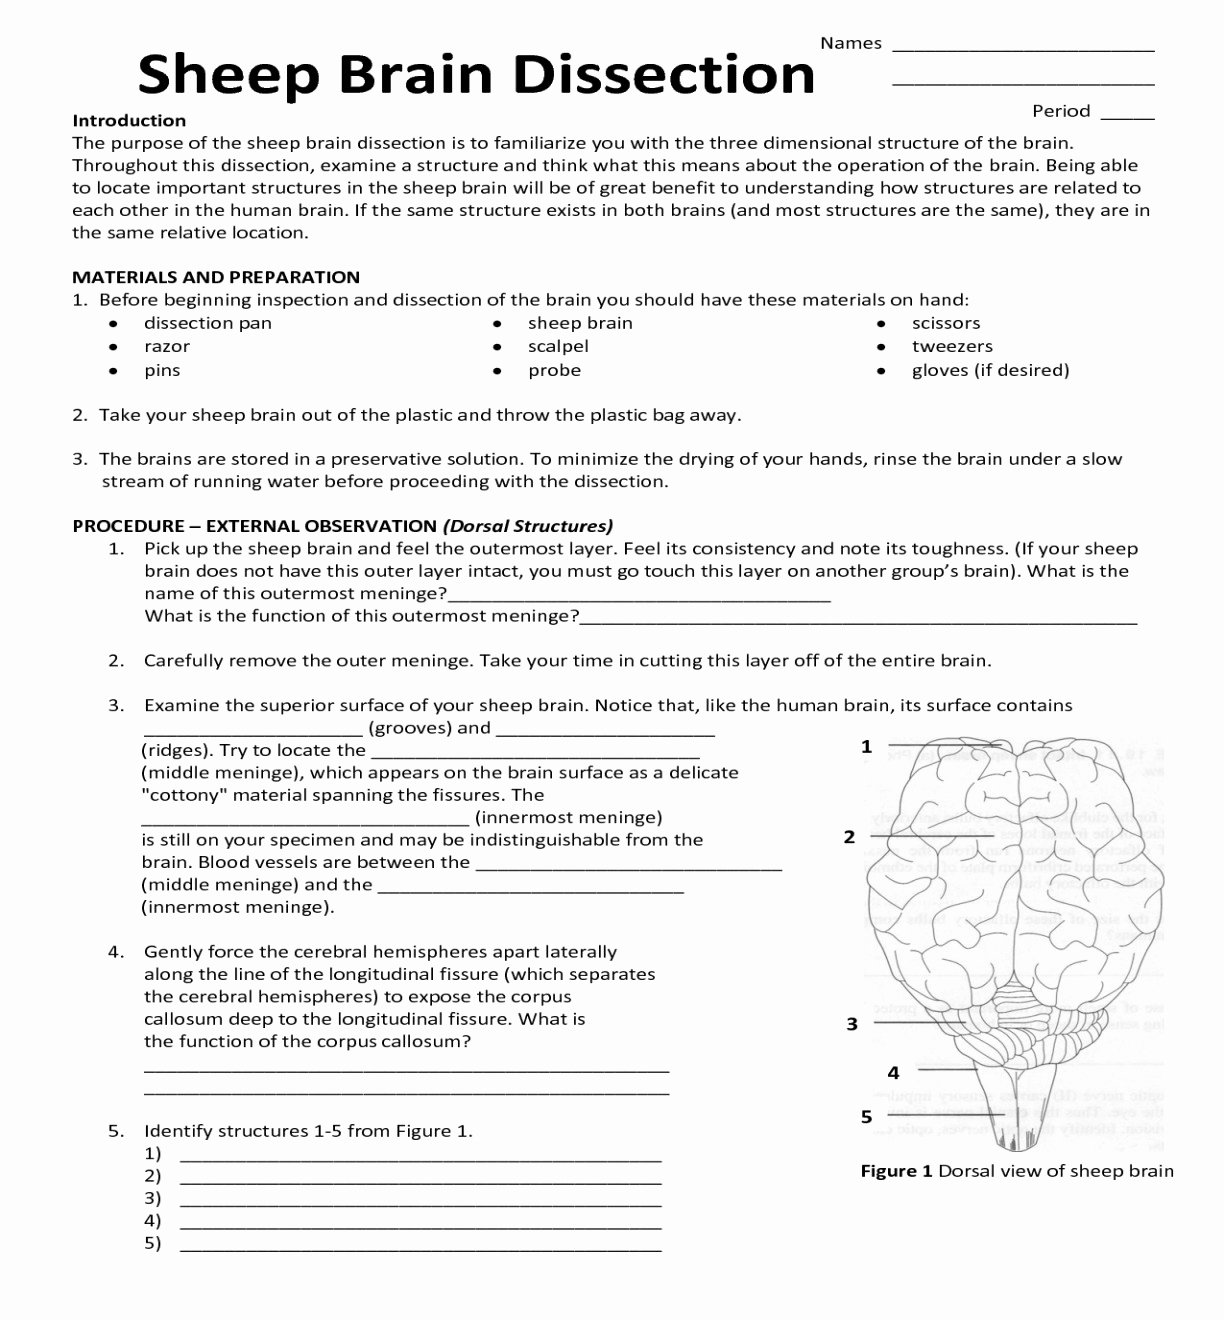 Sheep Brain Dissection Worksheet New Anatomy Sheep Brain Steven Hill